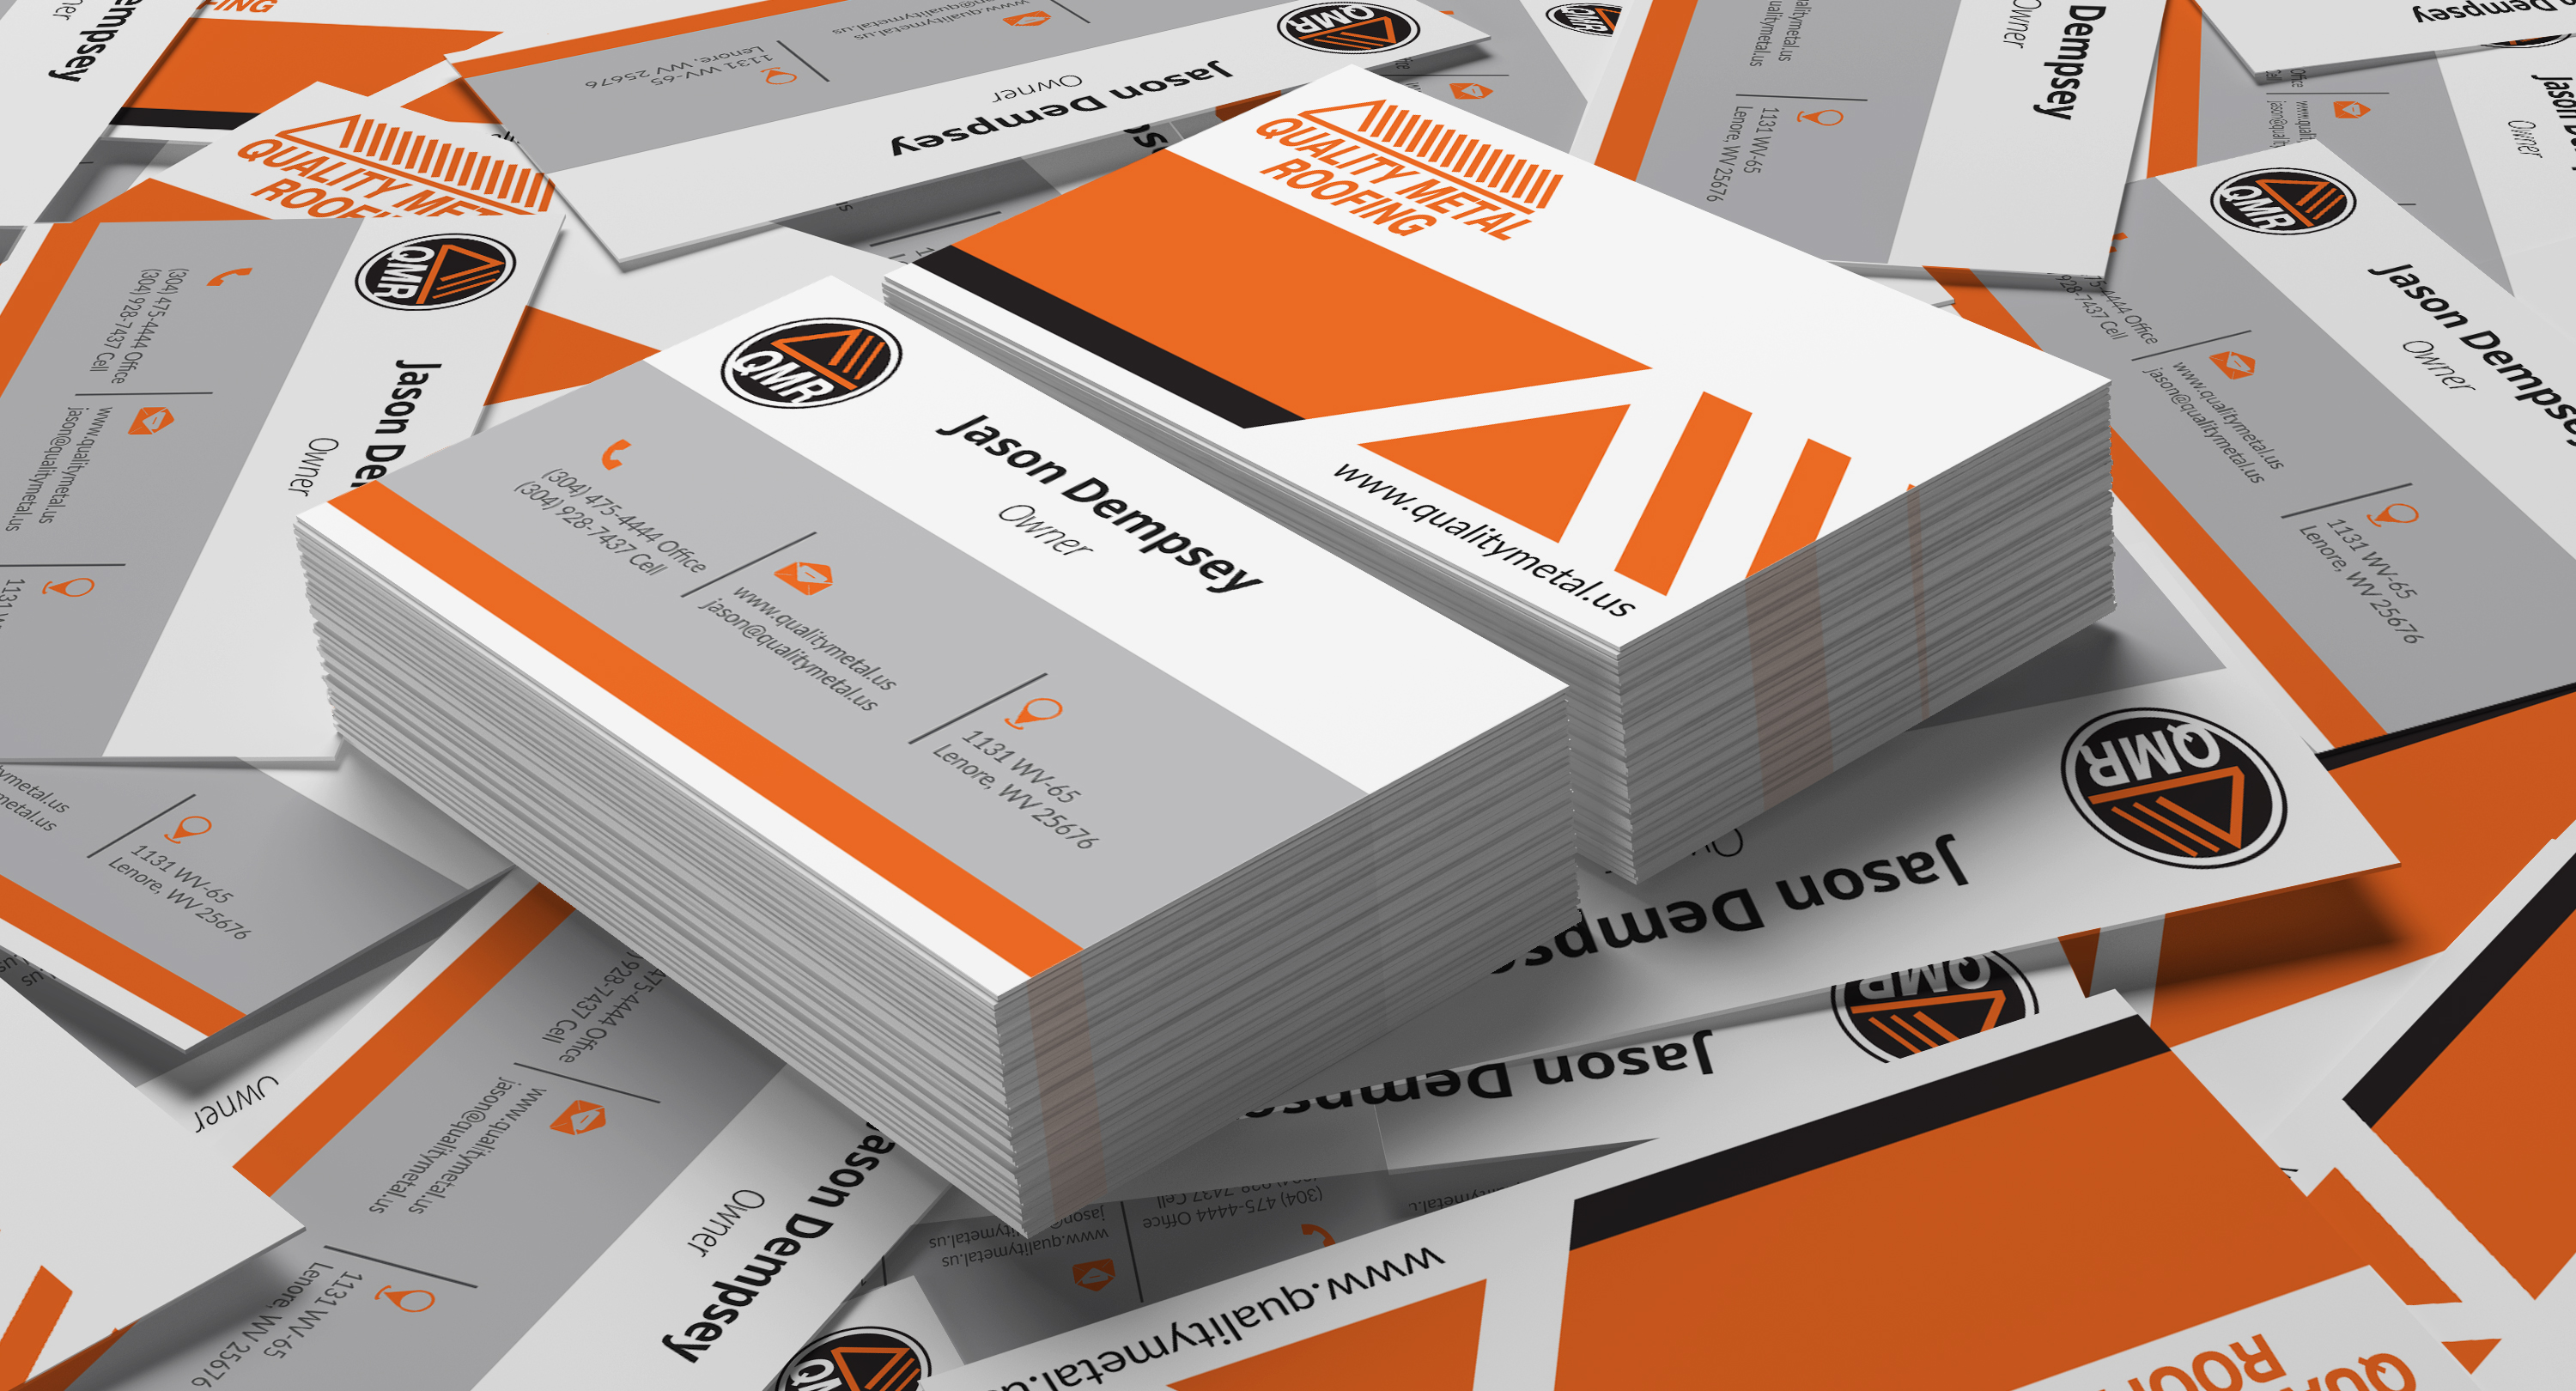 Business card design services printing graphic designs ad agency business card design services confidently inform business professionals reheart Gallery